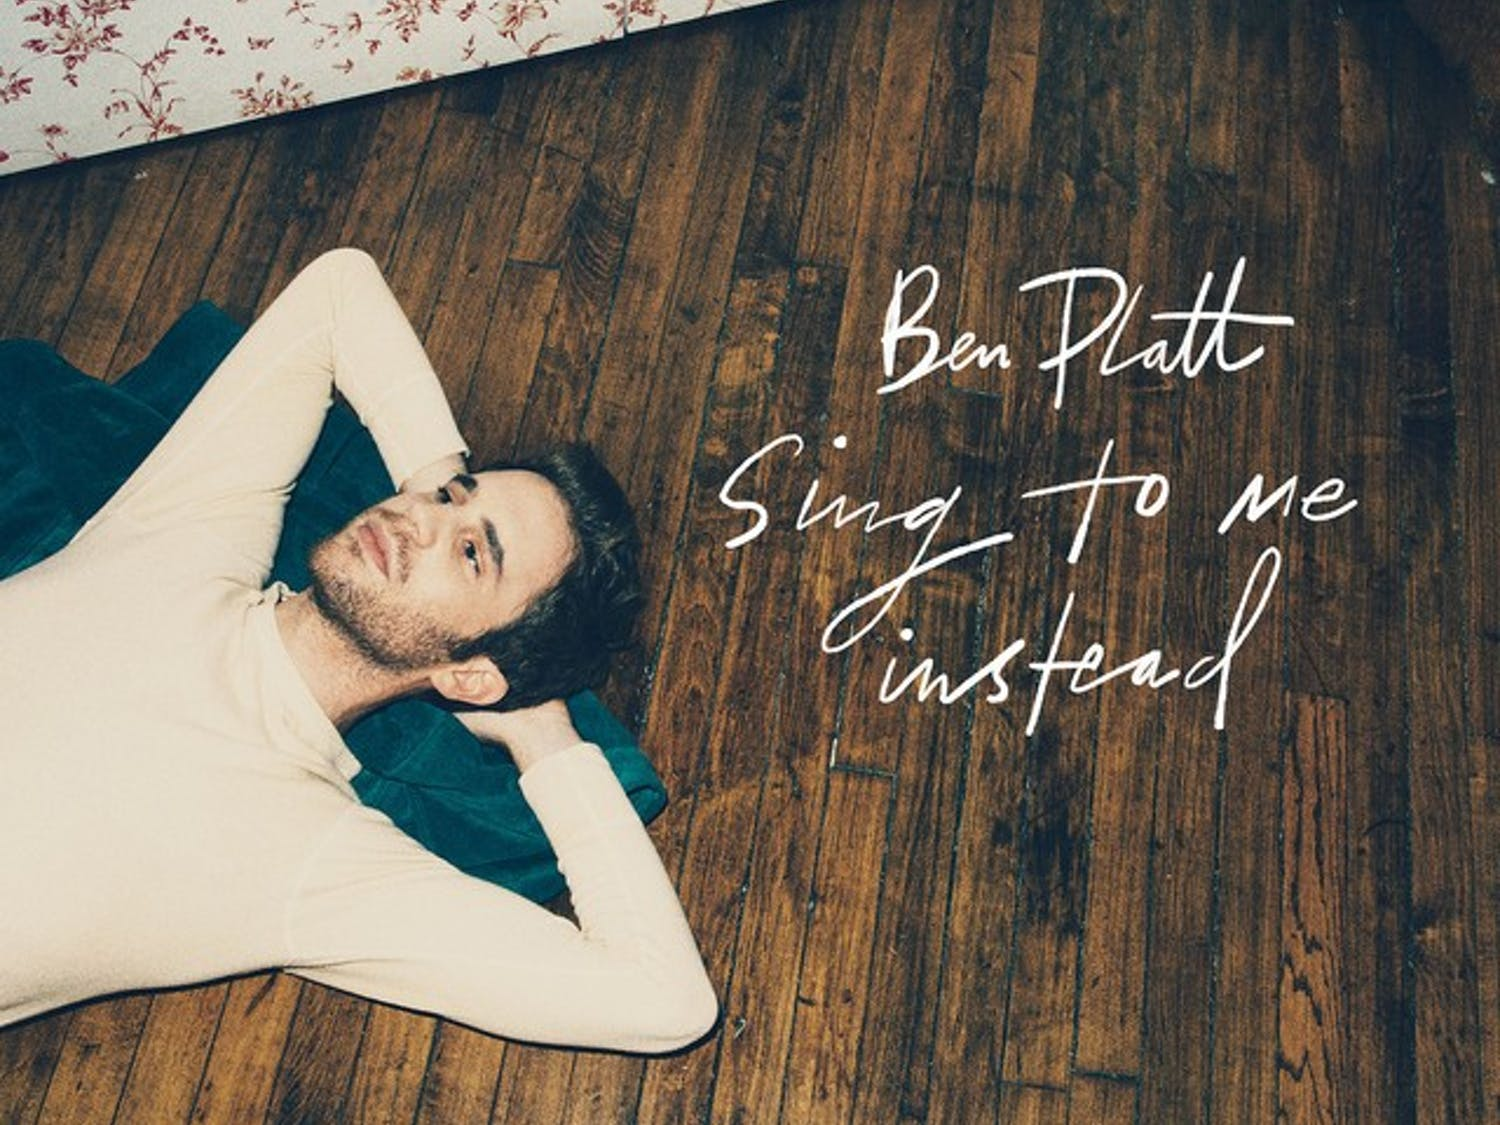 Broadway performer, Ben Platt, release his first studio album Sing to Me Instead — a remembrance of past loves and brutally honest themes of growing from loss and pain.